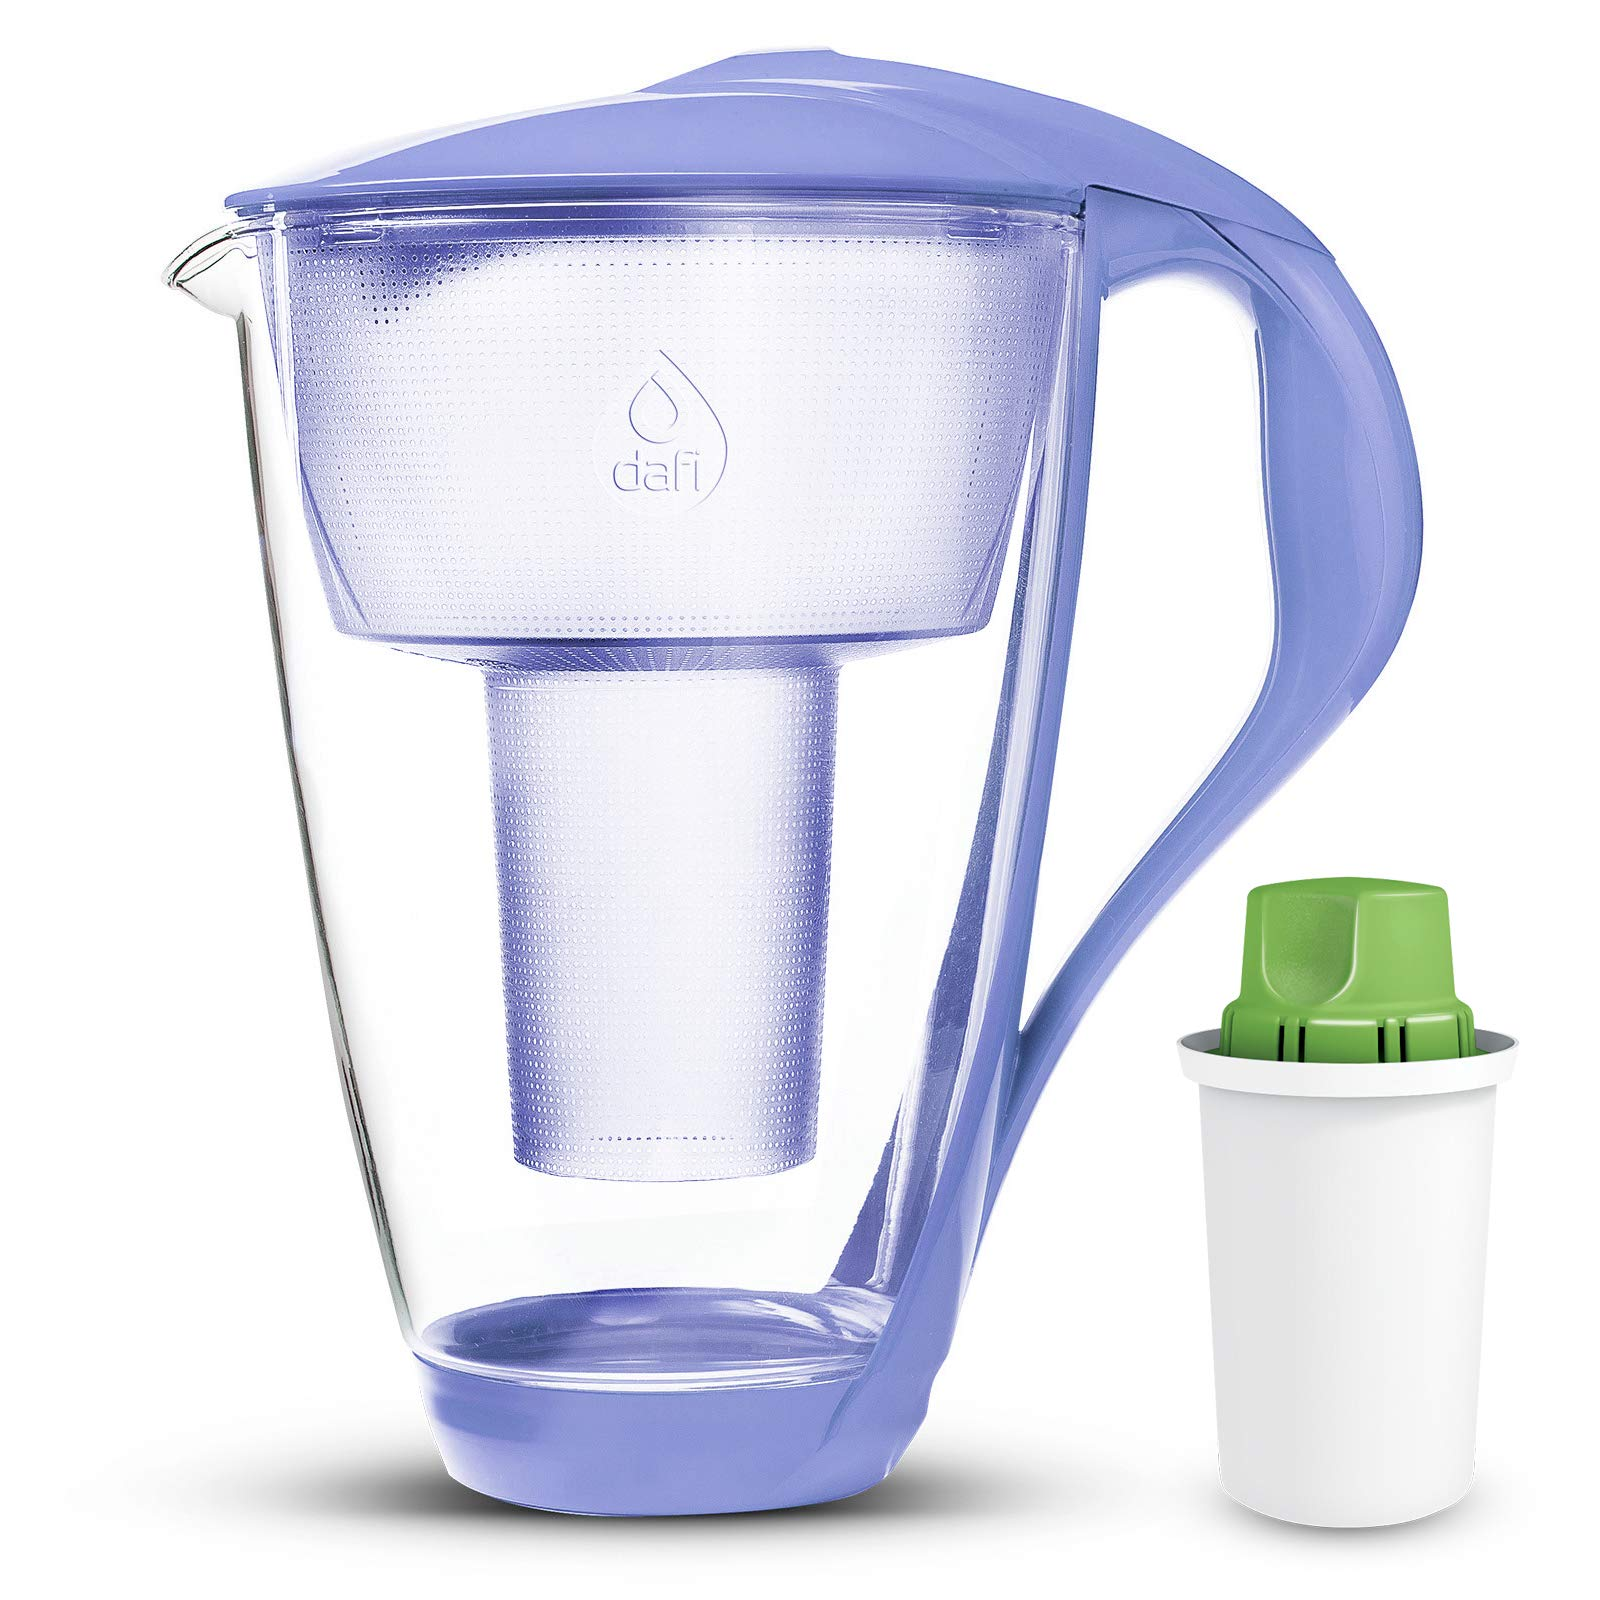 Dafi Alkaline UP Crystal Glass Water Pitcher 8 cups (Violet - Crystal Alkaline Water Pitcher with 1 Alkaline UP pH Water Filter)